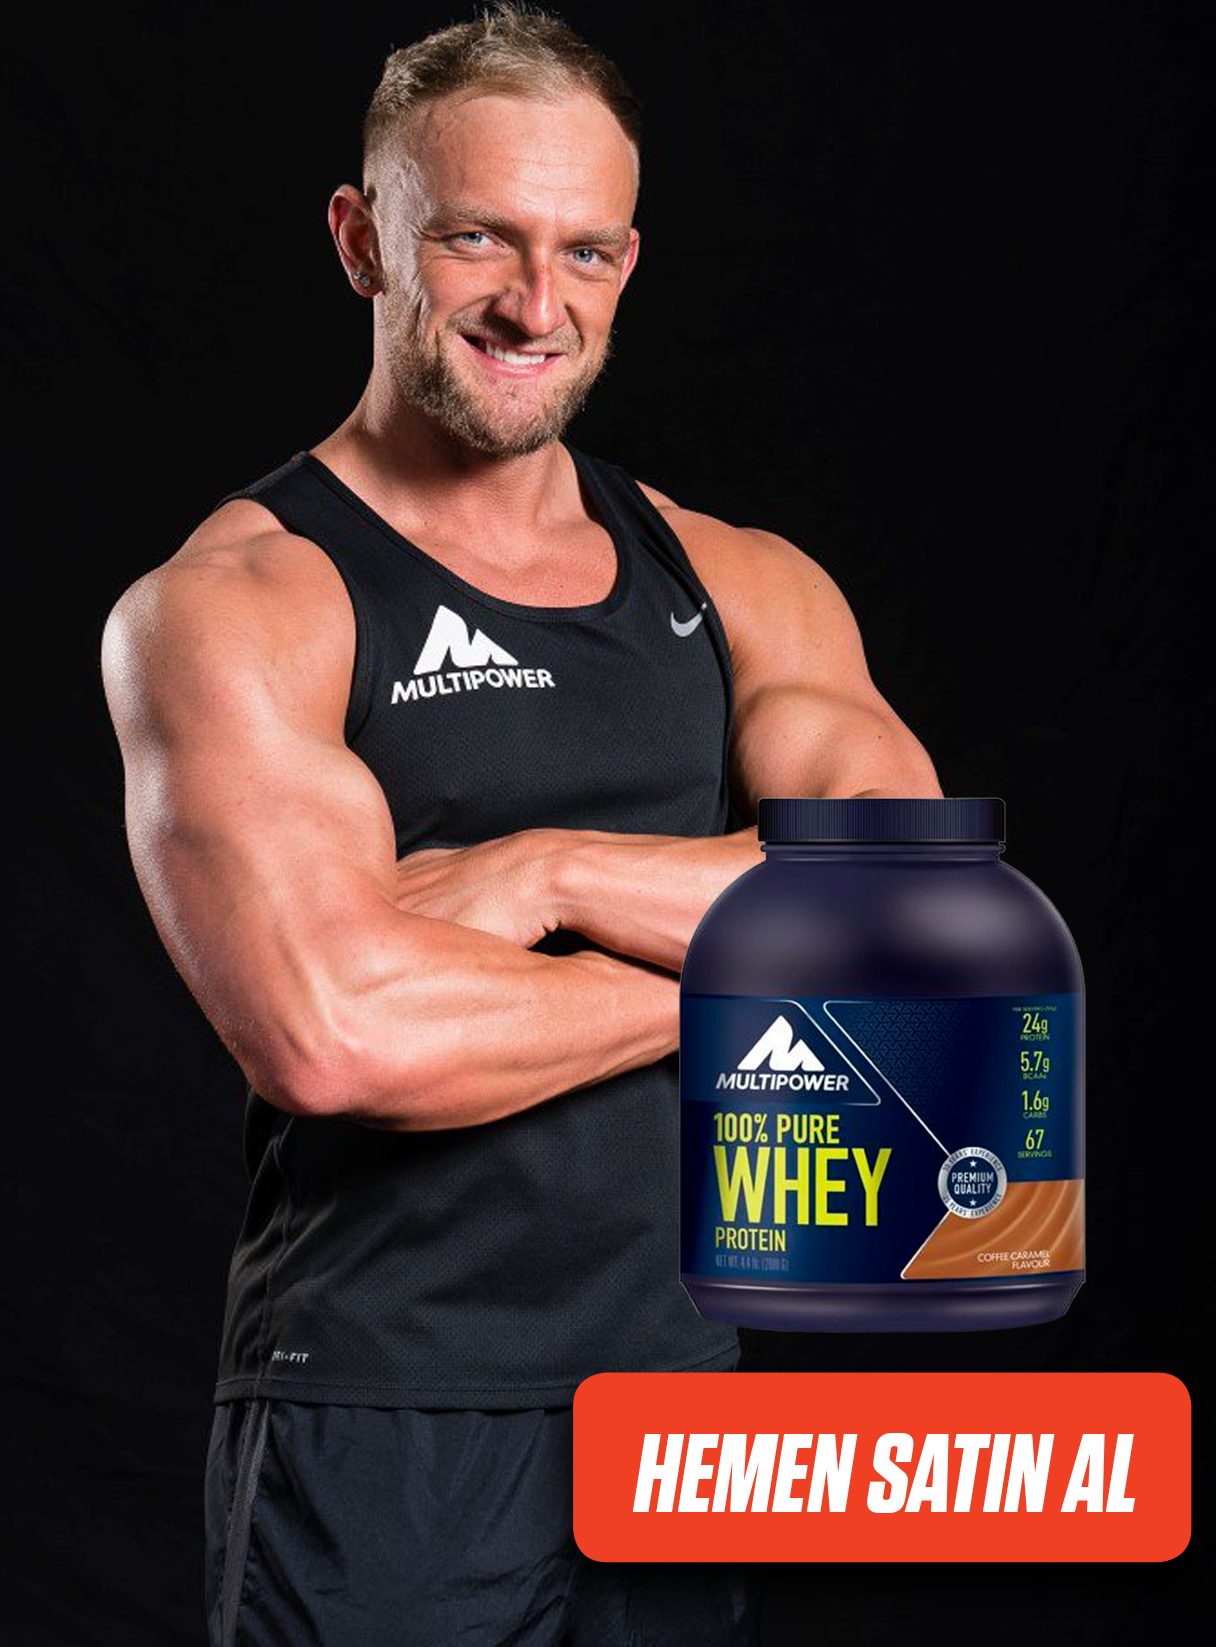 Multipower Whey